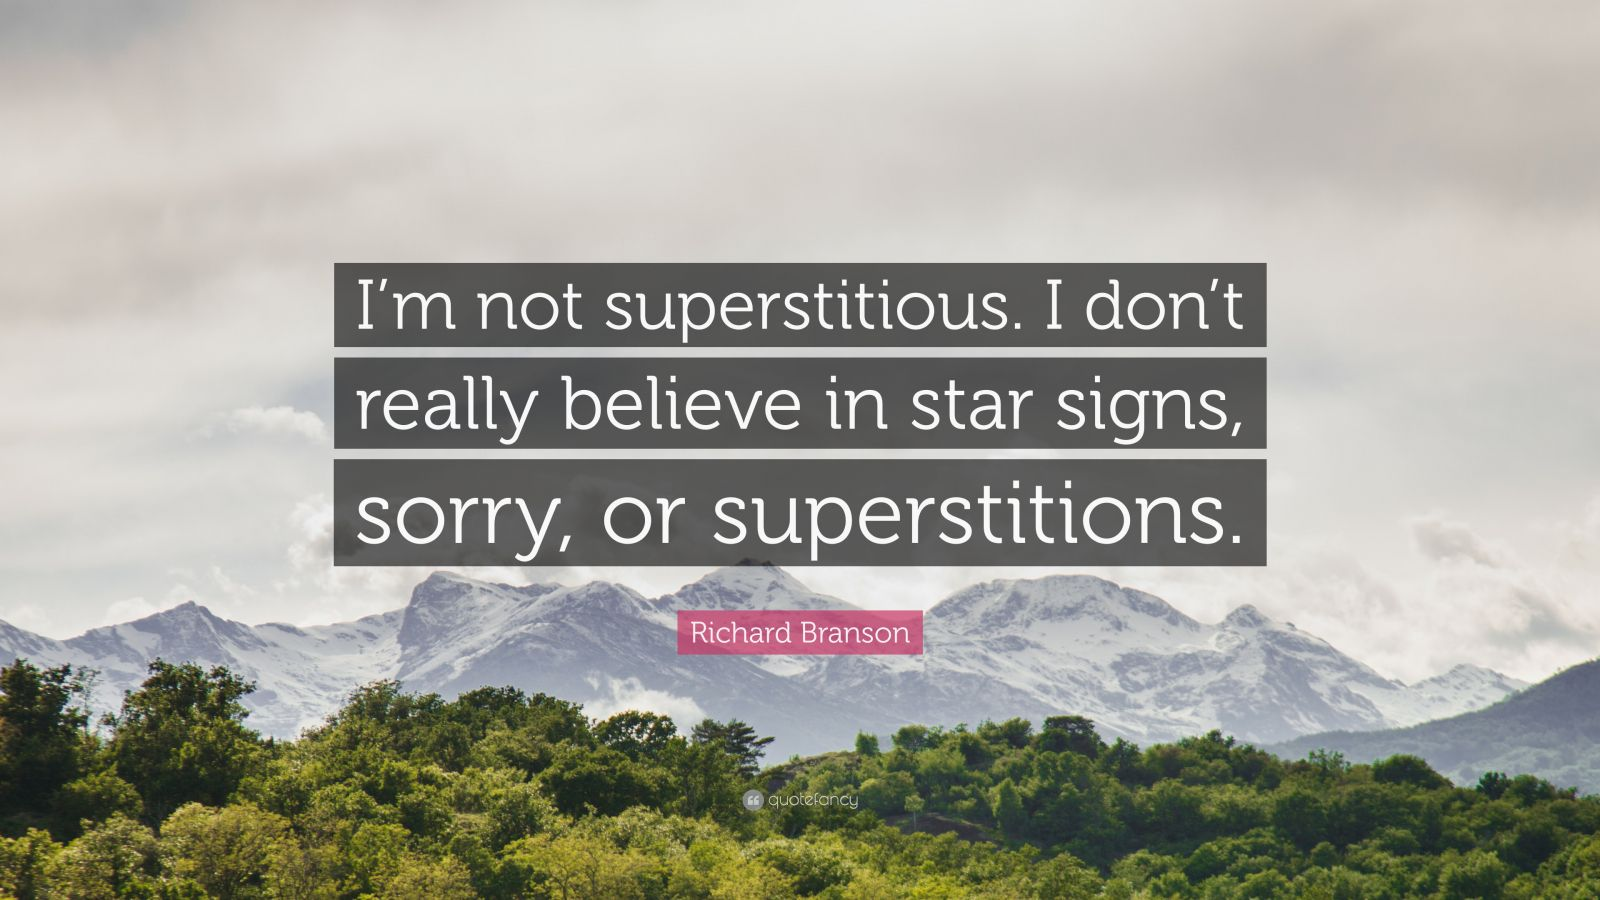 """Richard Branson Quote: """"I'm not superstitious. I don't really believe in star signs, sorry, or superstitions."""""""